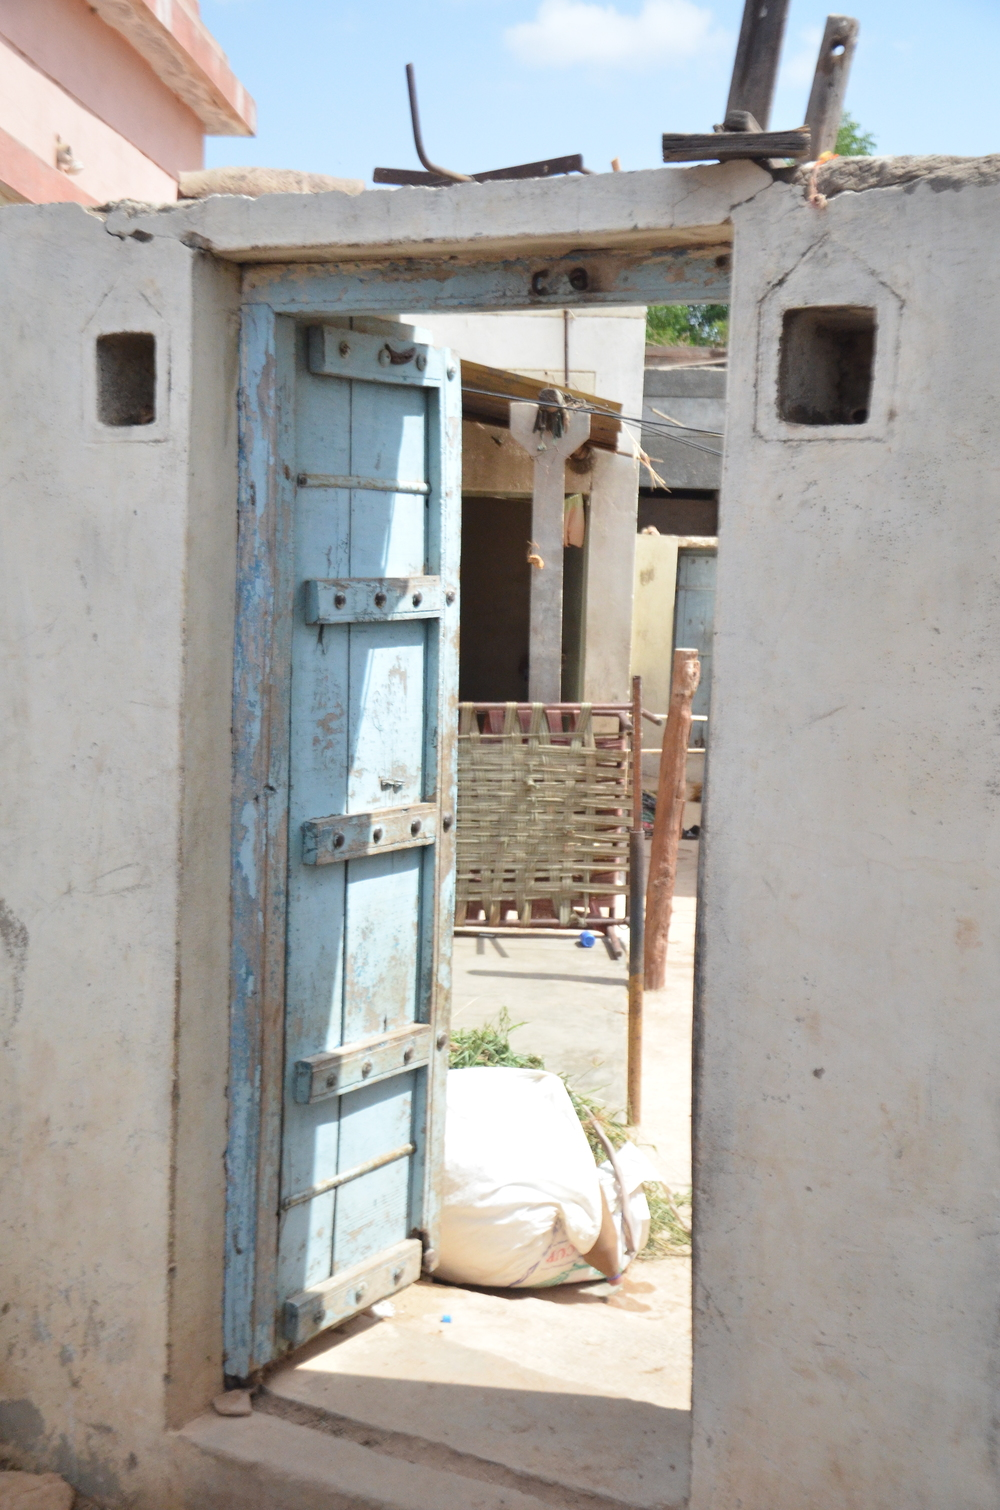 The door to the KOR family's home is always open, symbolic of the warmth and kindness they express to everyone they meet